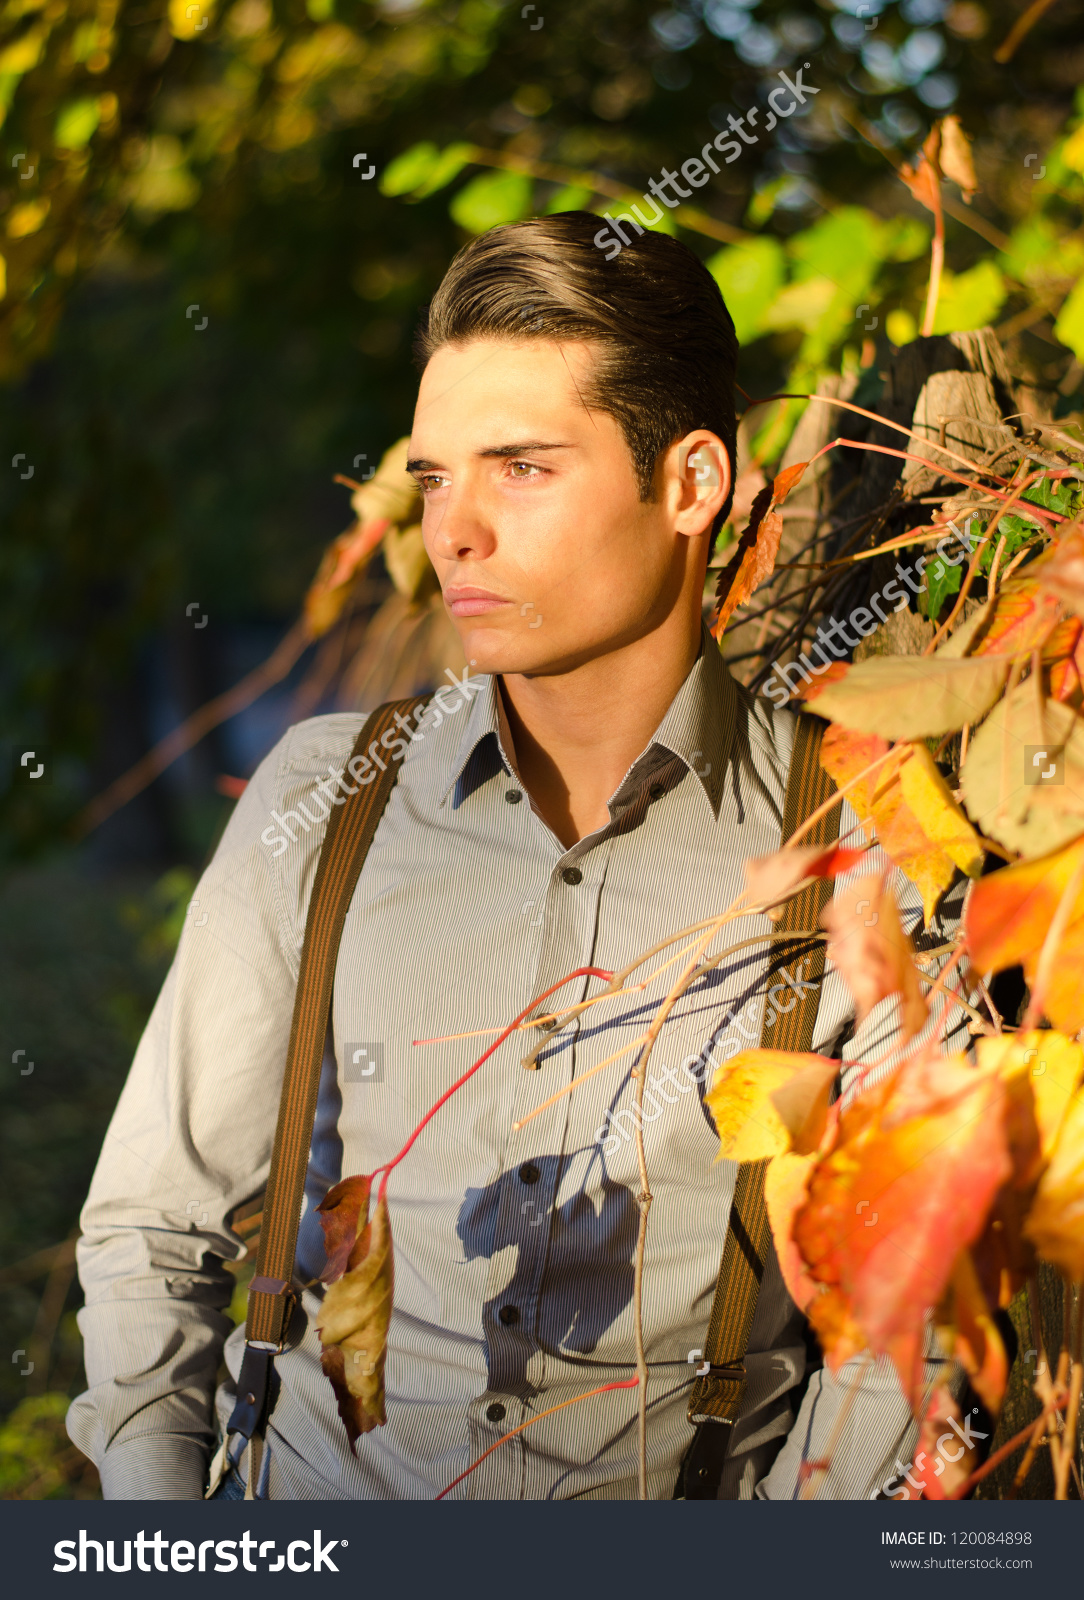 http://delbaraneh.com/wp-content/uploads/2016/10/stock-photo-attractive-young-male-model-in-fall-autumn-outdoors-in-nature-120084898.jpg